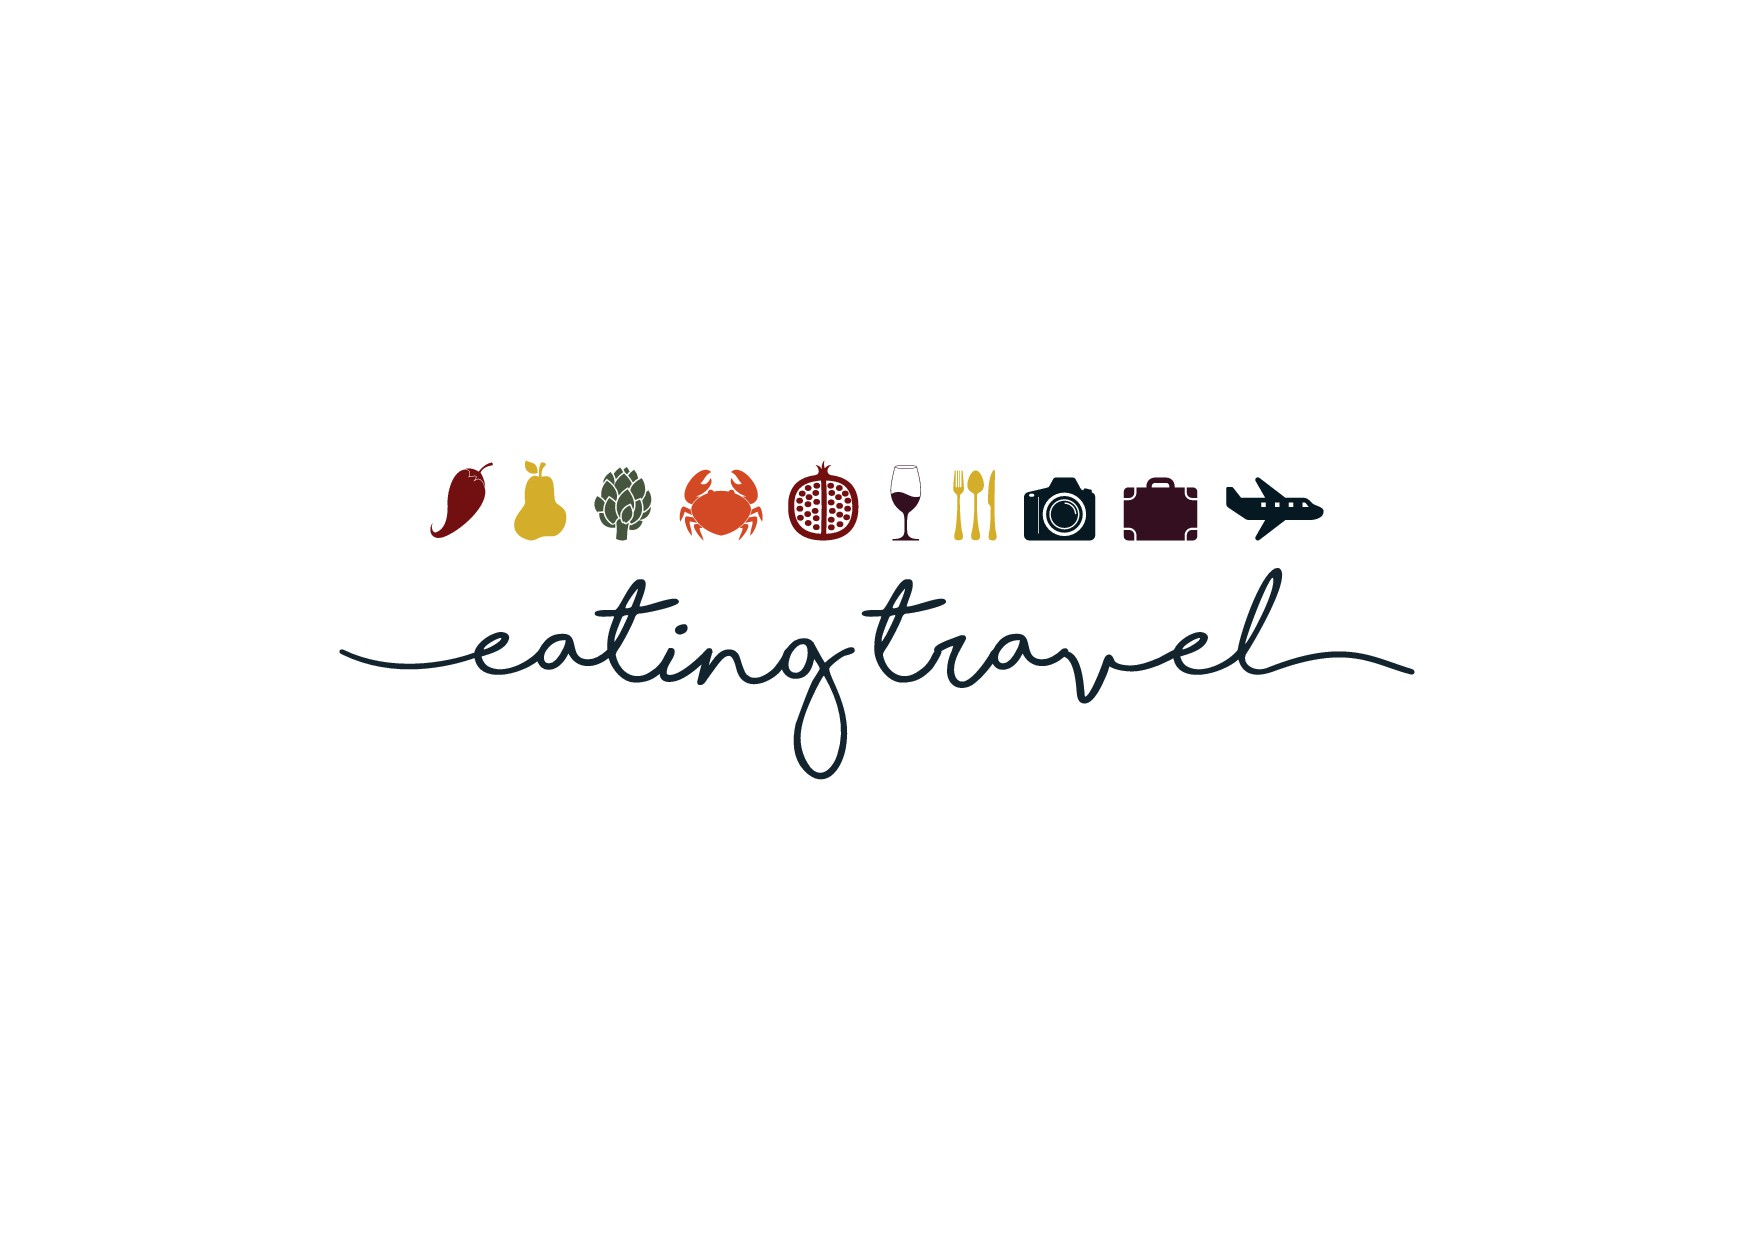 Luxe, bespoke lettering and logo needed for Foodie Travel brand